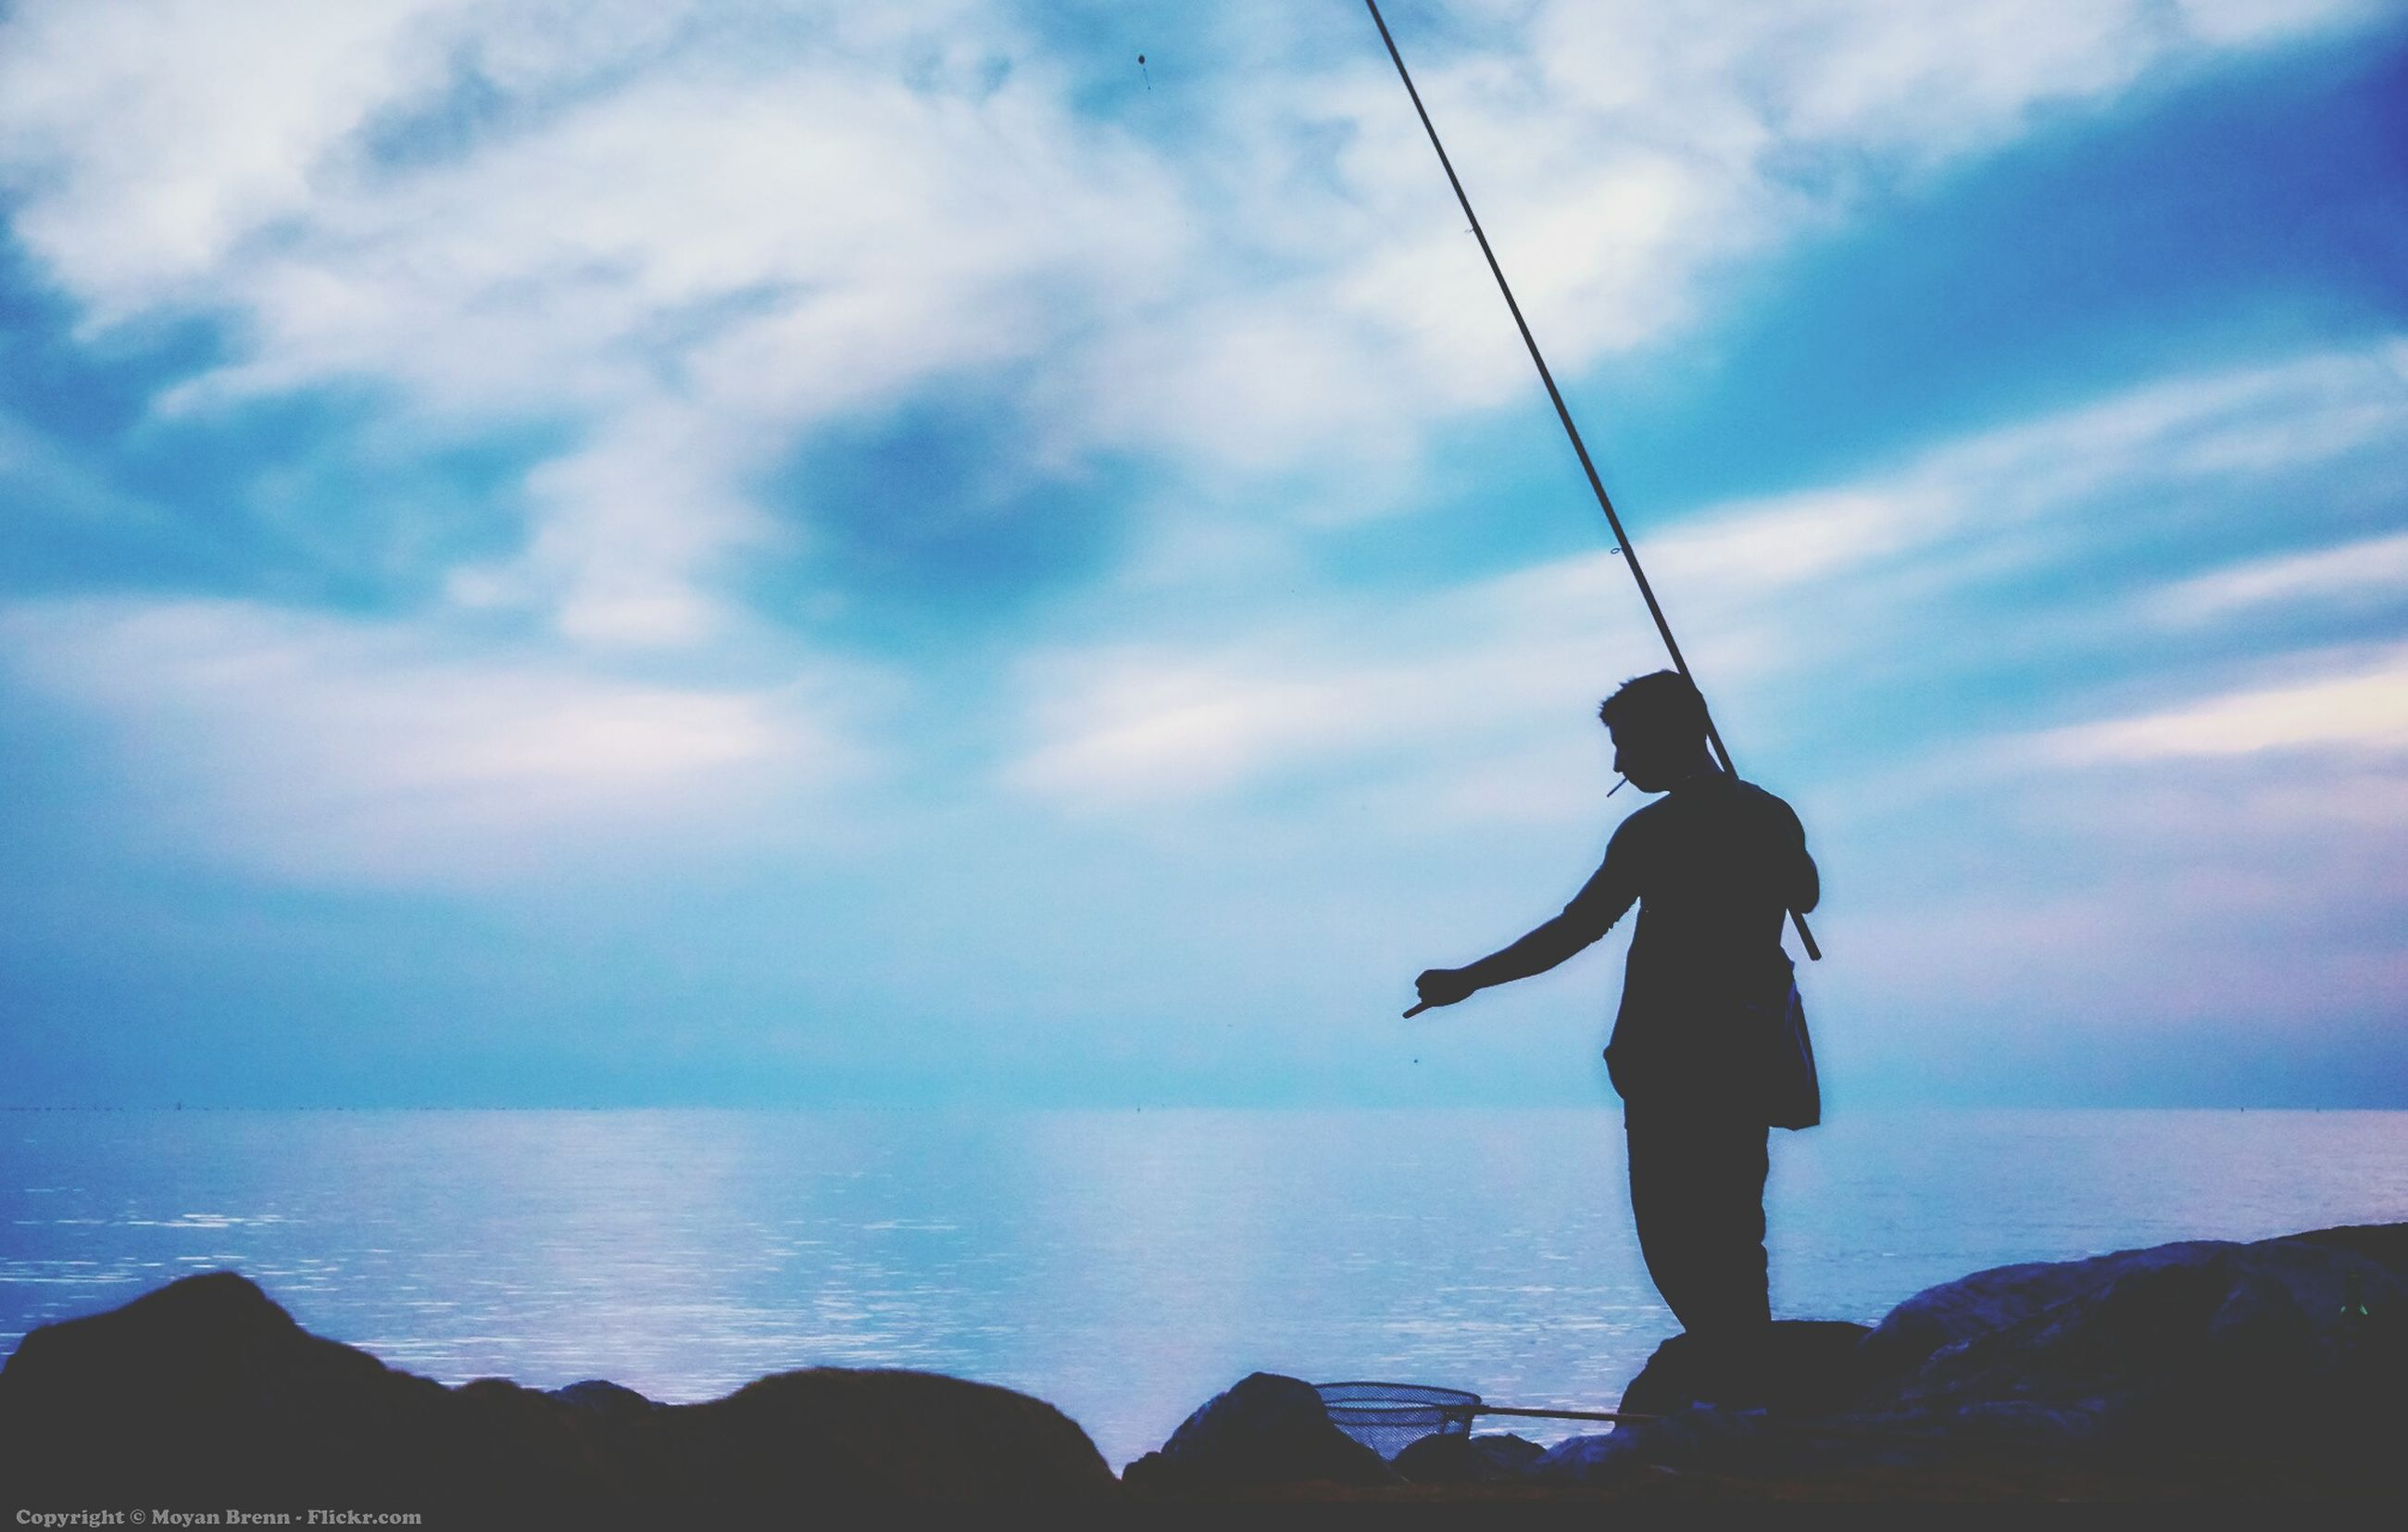 full length, sky, lifestyles, sea, leisure activity, men, water, standing, horizon over water, silhouette, cloud - sky, rear view, scenics, beauty in nature, fishing rod, holding, nature, tranquility